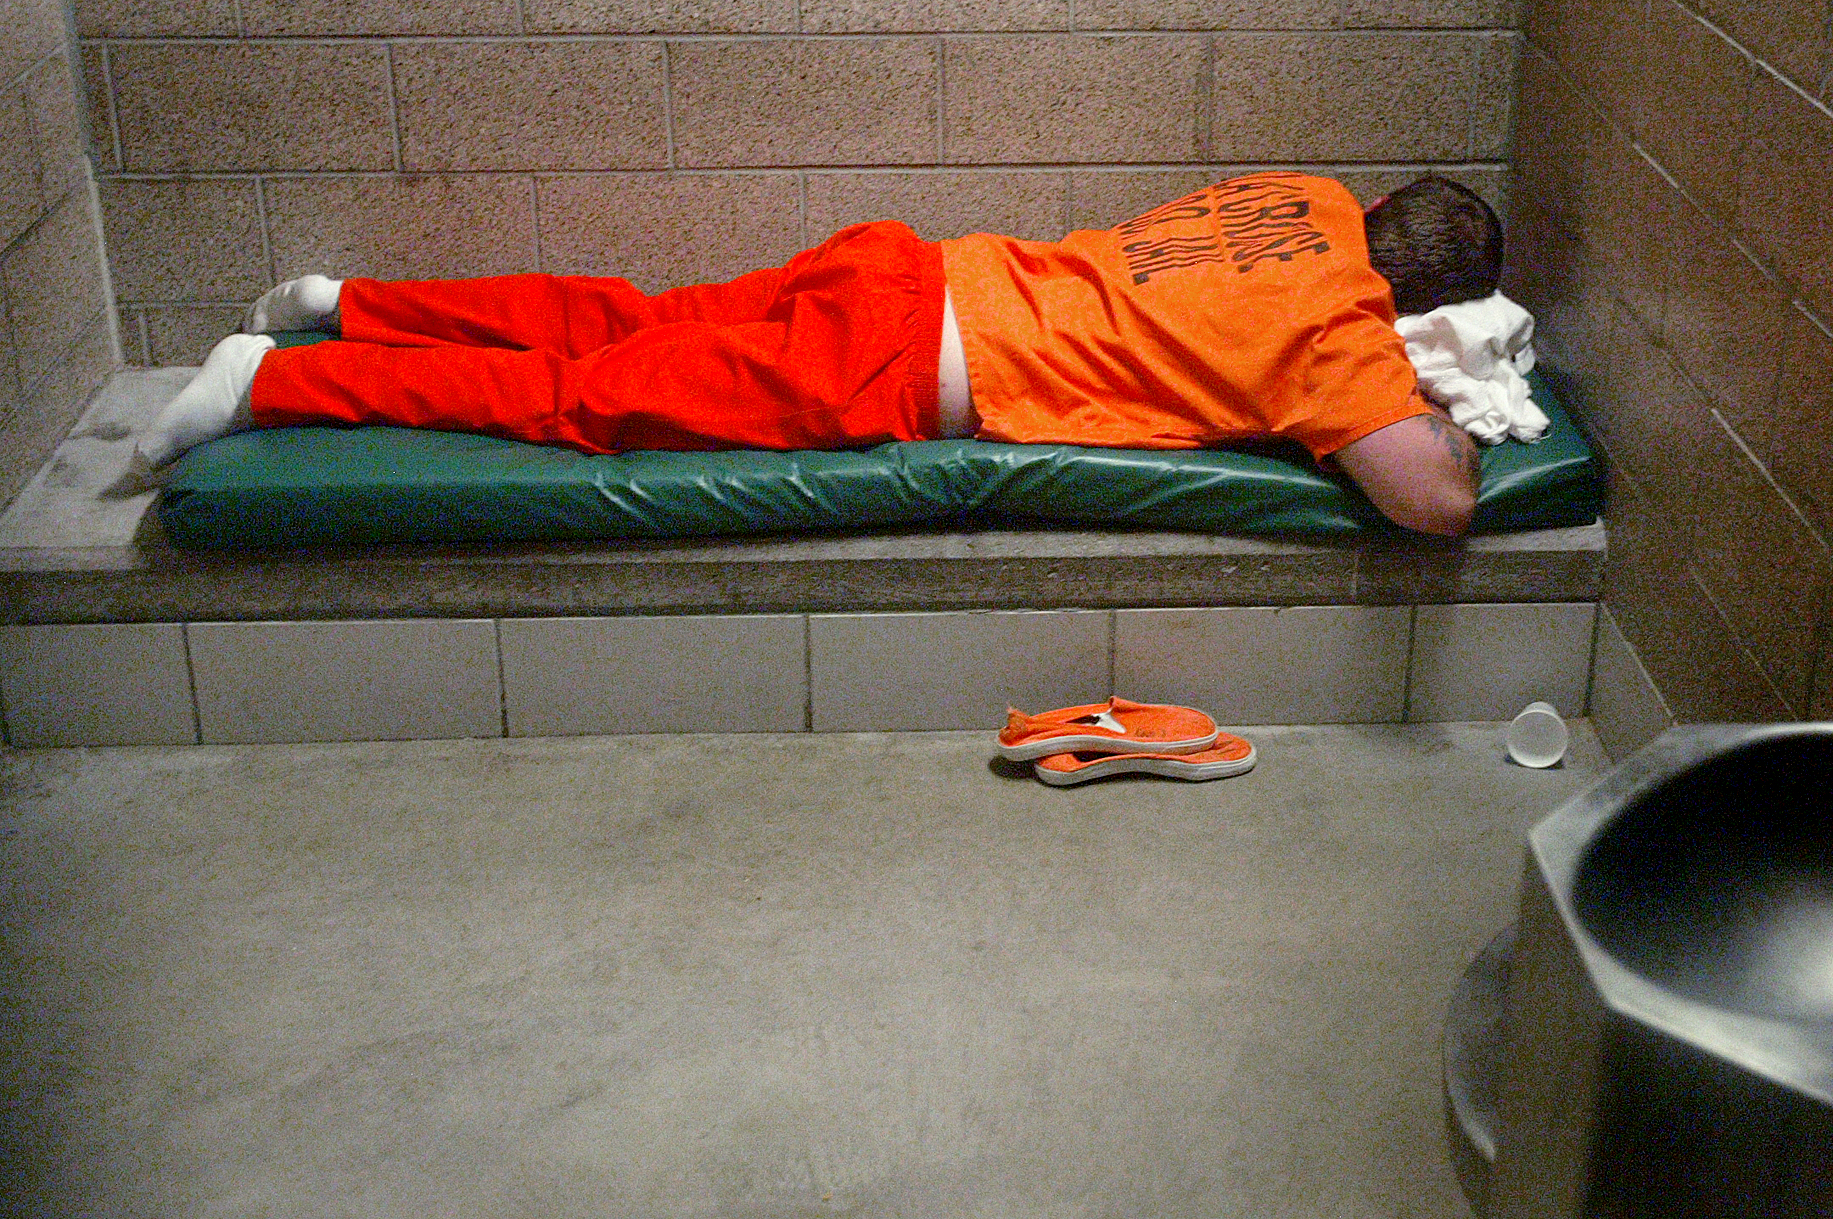 suicide in prison Jail and prison suicide rates in the united states are much higher than rates for those who are not incarcerated jail suicide rates are more than four tim read more here.